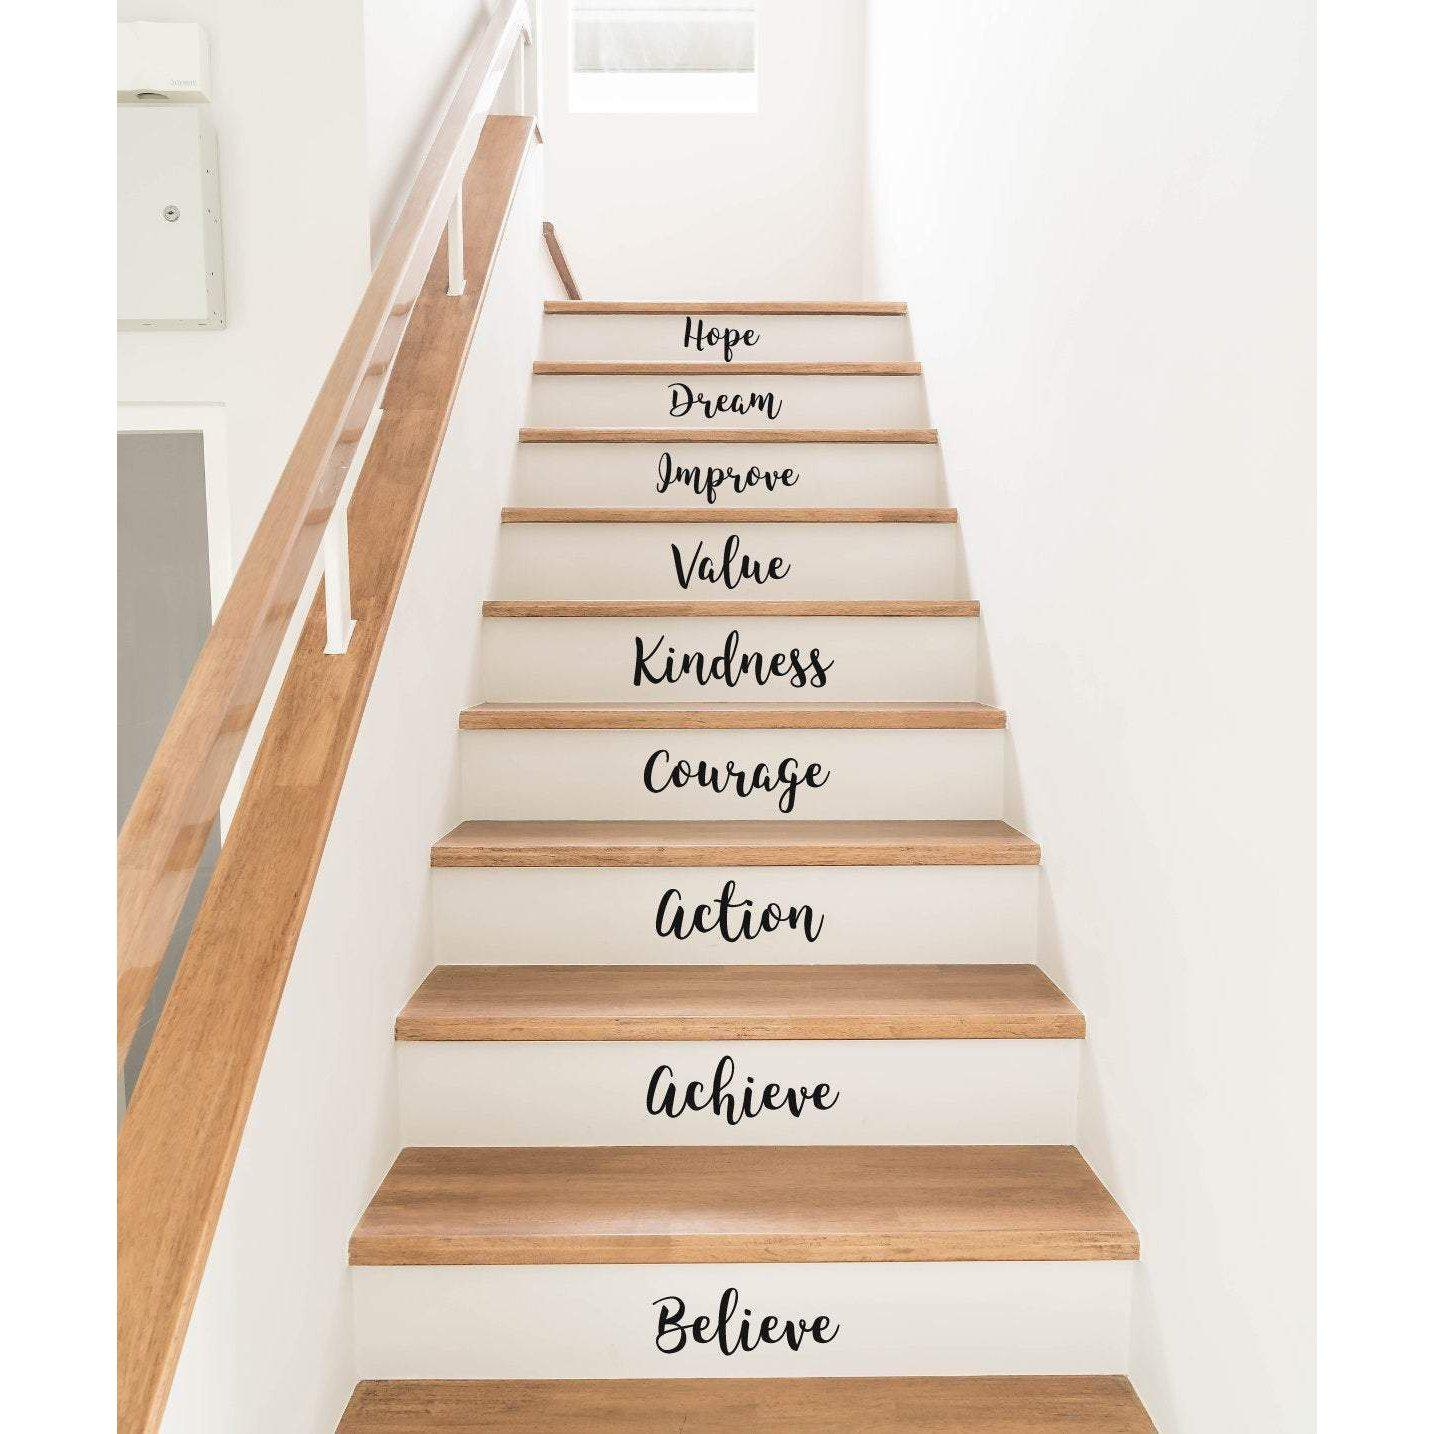 Stickers For Stairs, Decals For Stairs, Stair Decals, Stair Stickers, Stickers Pack, Motivational Quote, Inspirational Quote, Vinyl Stickers